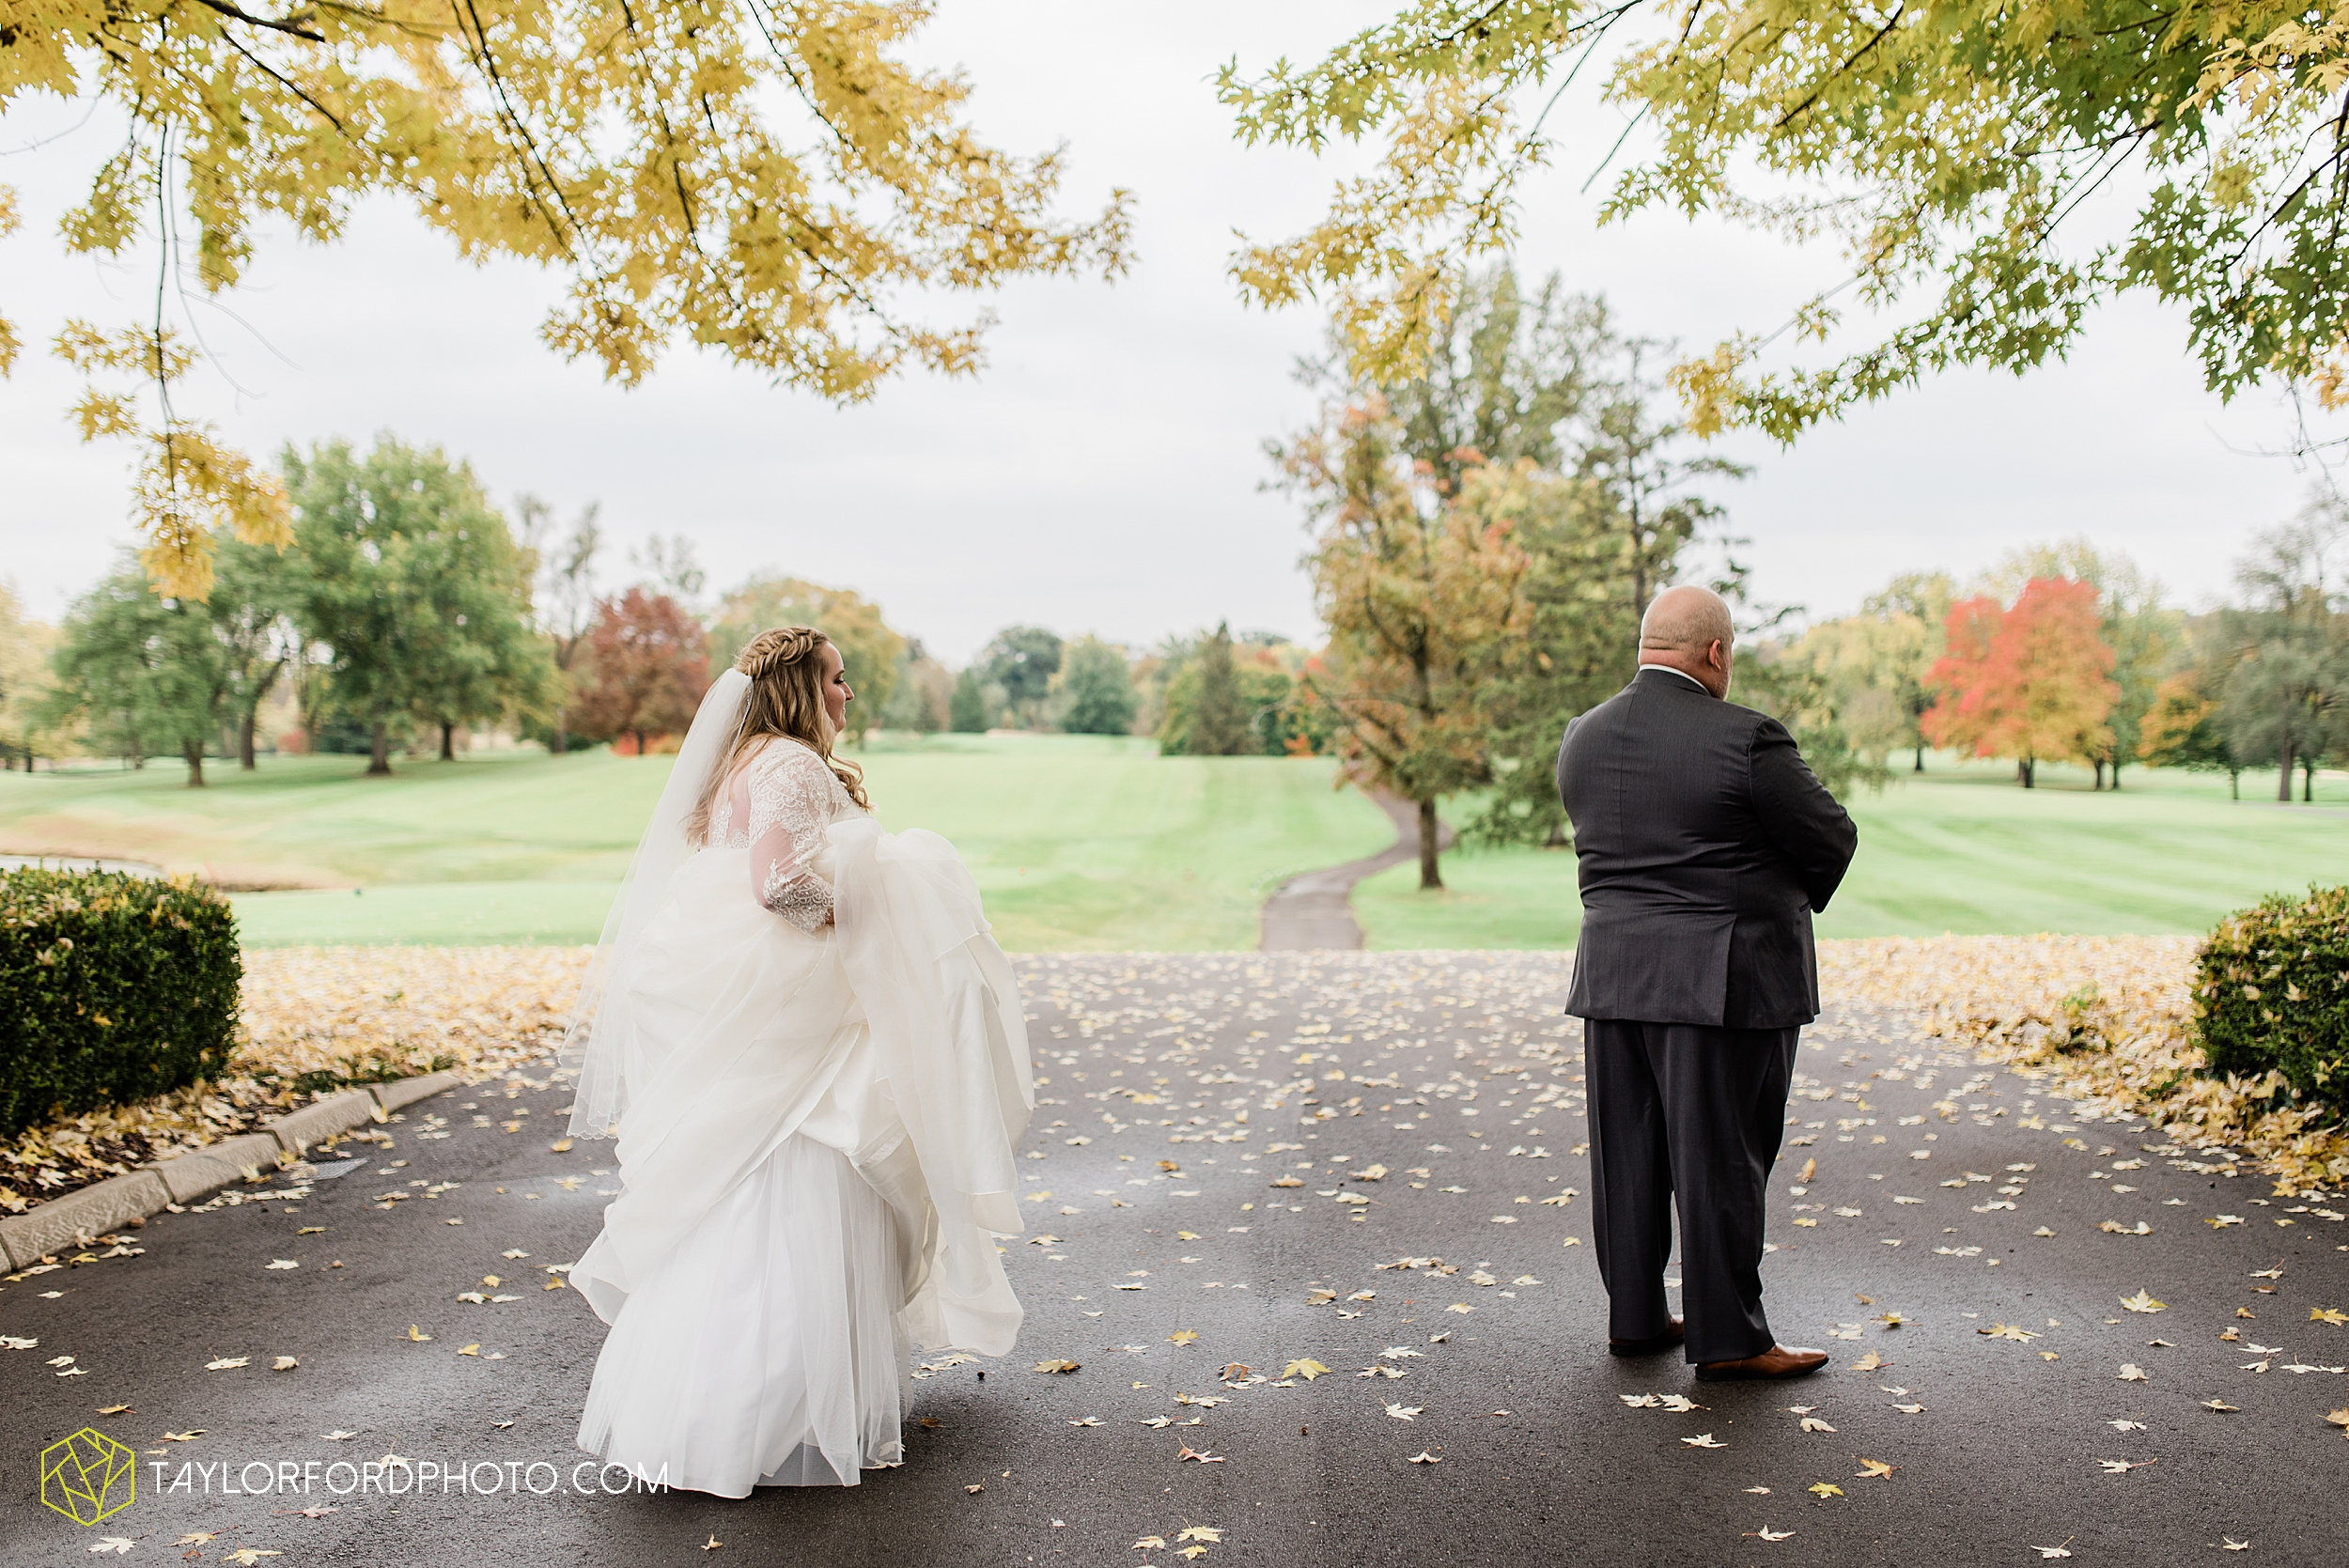 madi-devin-getts-minear-orchard-ridge-golf-club-outdoor-pin-up-curls-downtown-southwest-fort-wayne-indiana-wedding-fall-photographer-taylor-ford-photography_1412.jpg